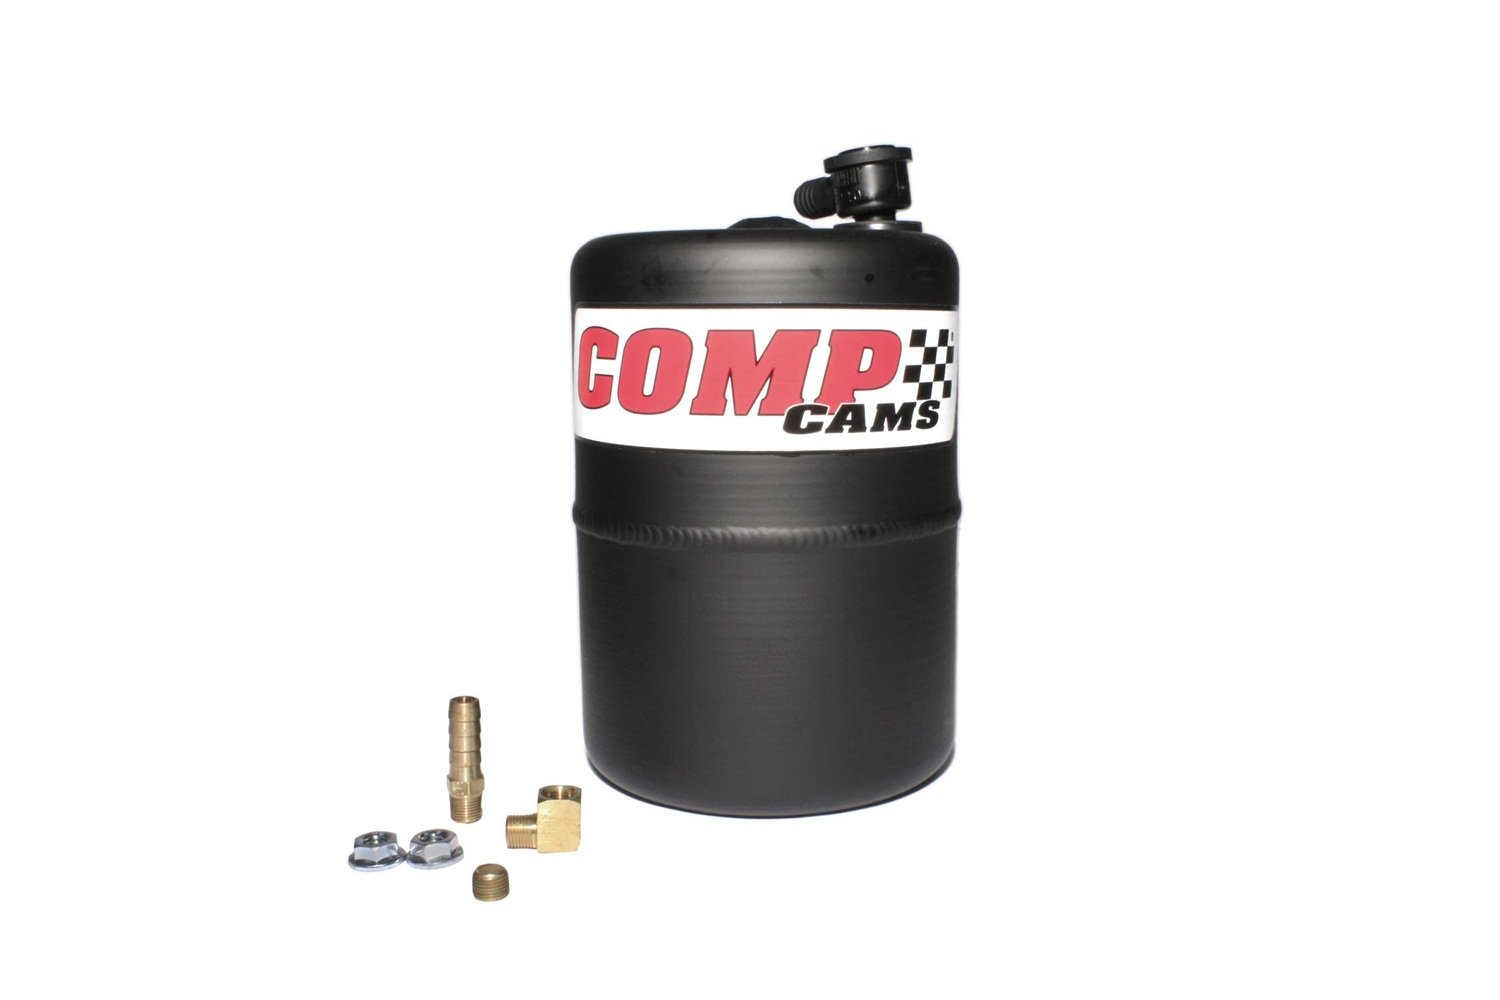 Competition Cams 5200 Vacuum Canister, Black Powder Coated Aluminum